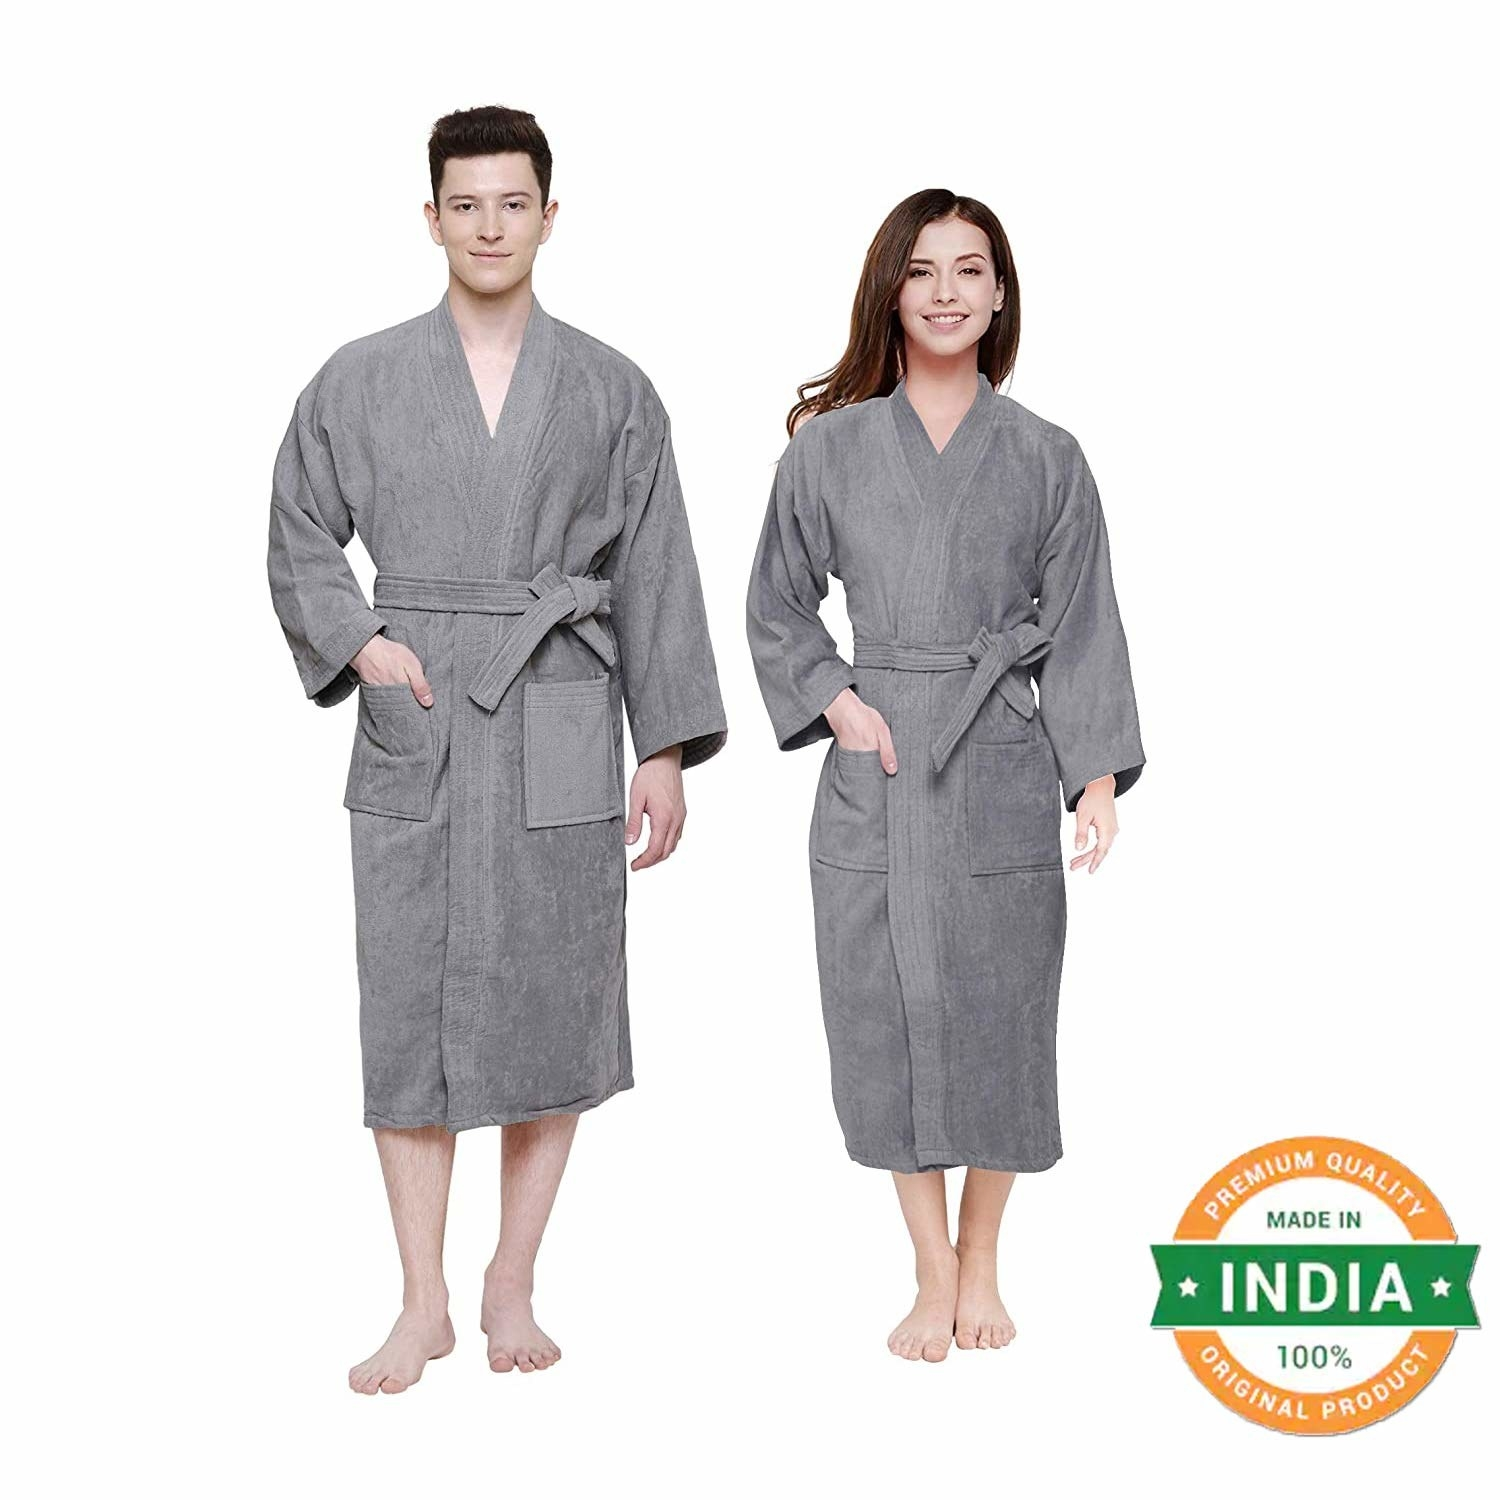 A man and a woman wearing grey unisex bathrobes